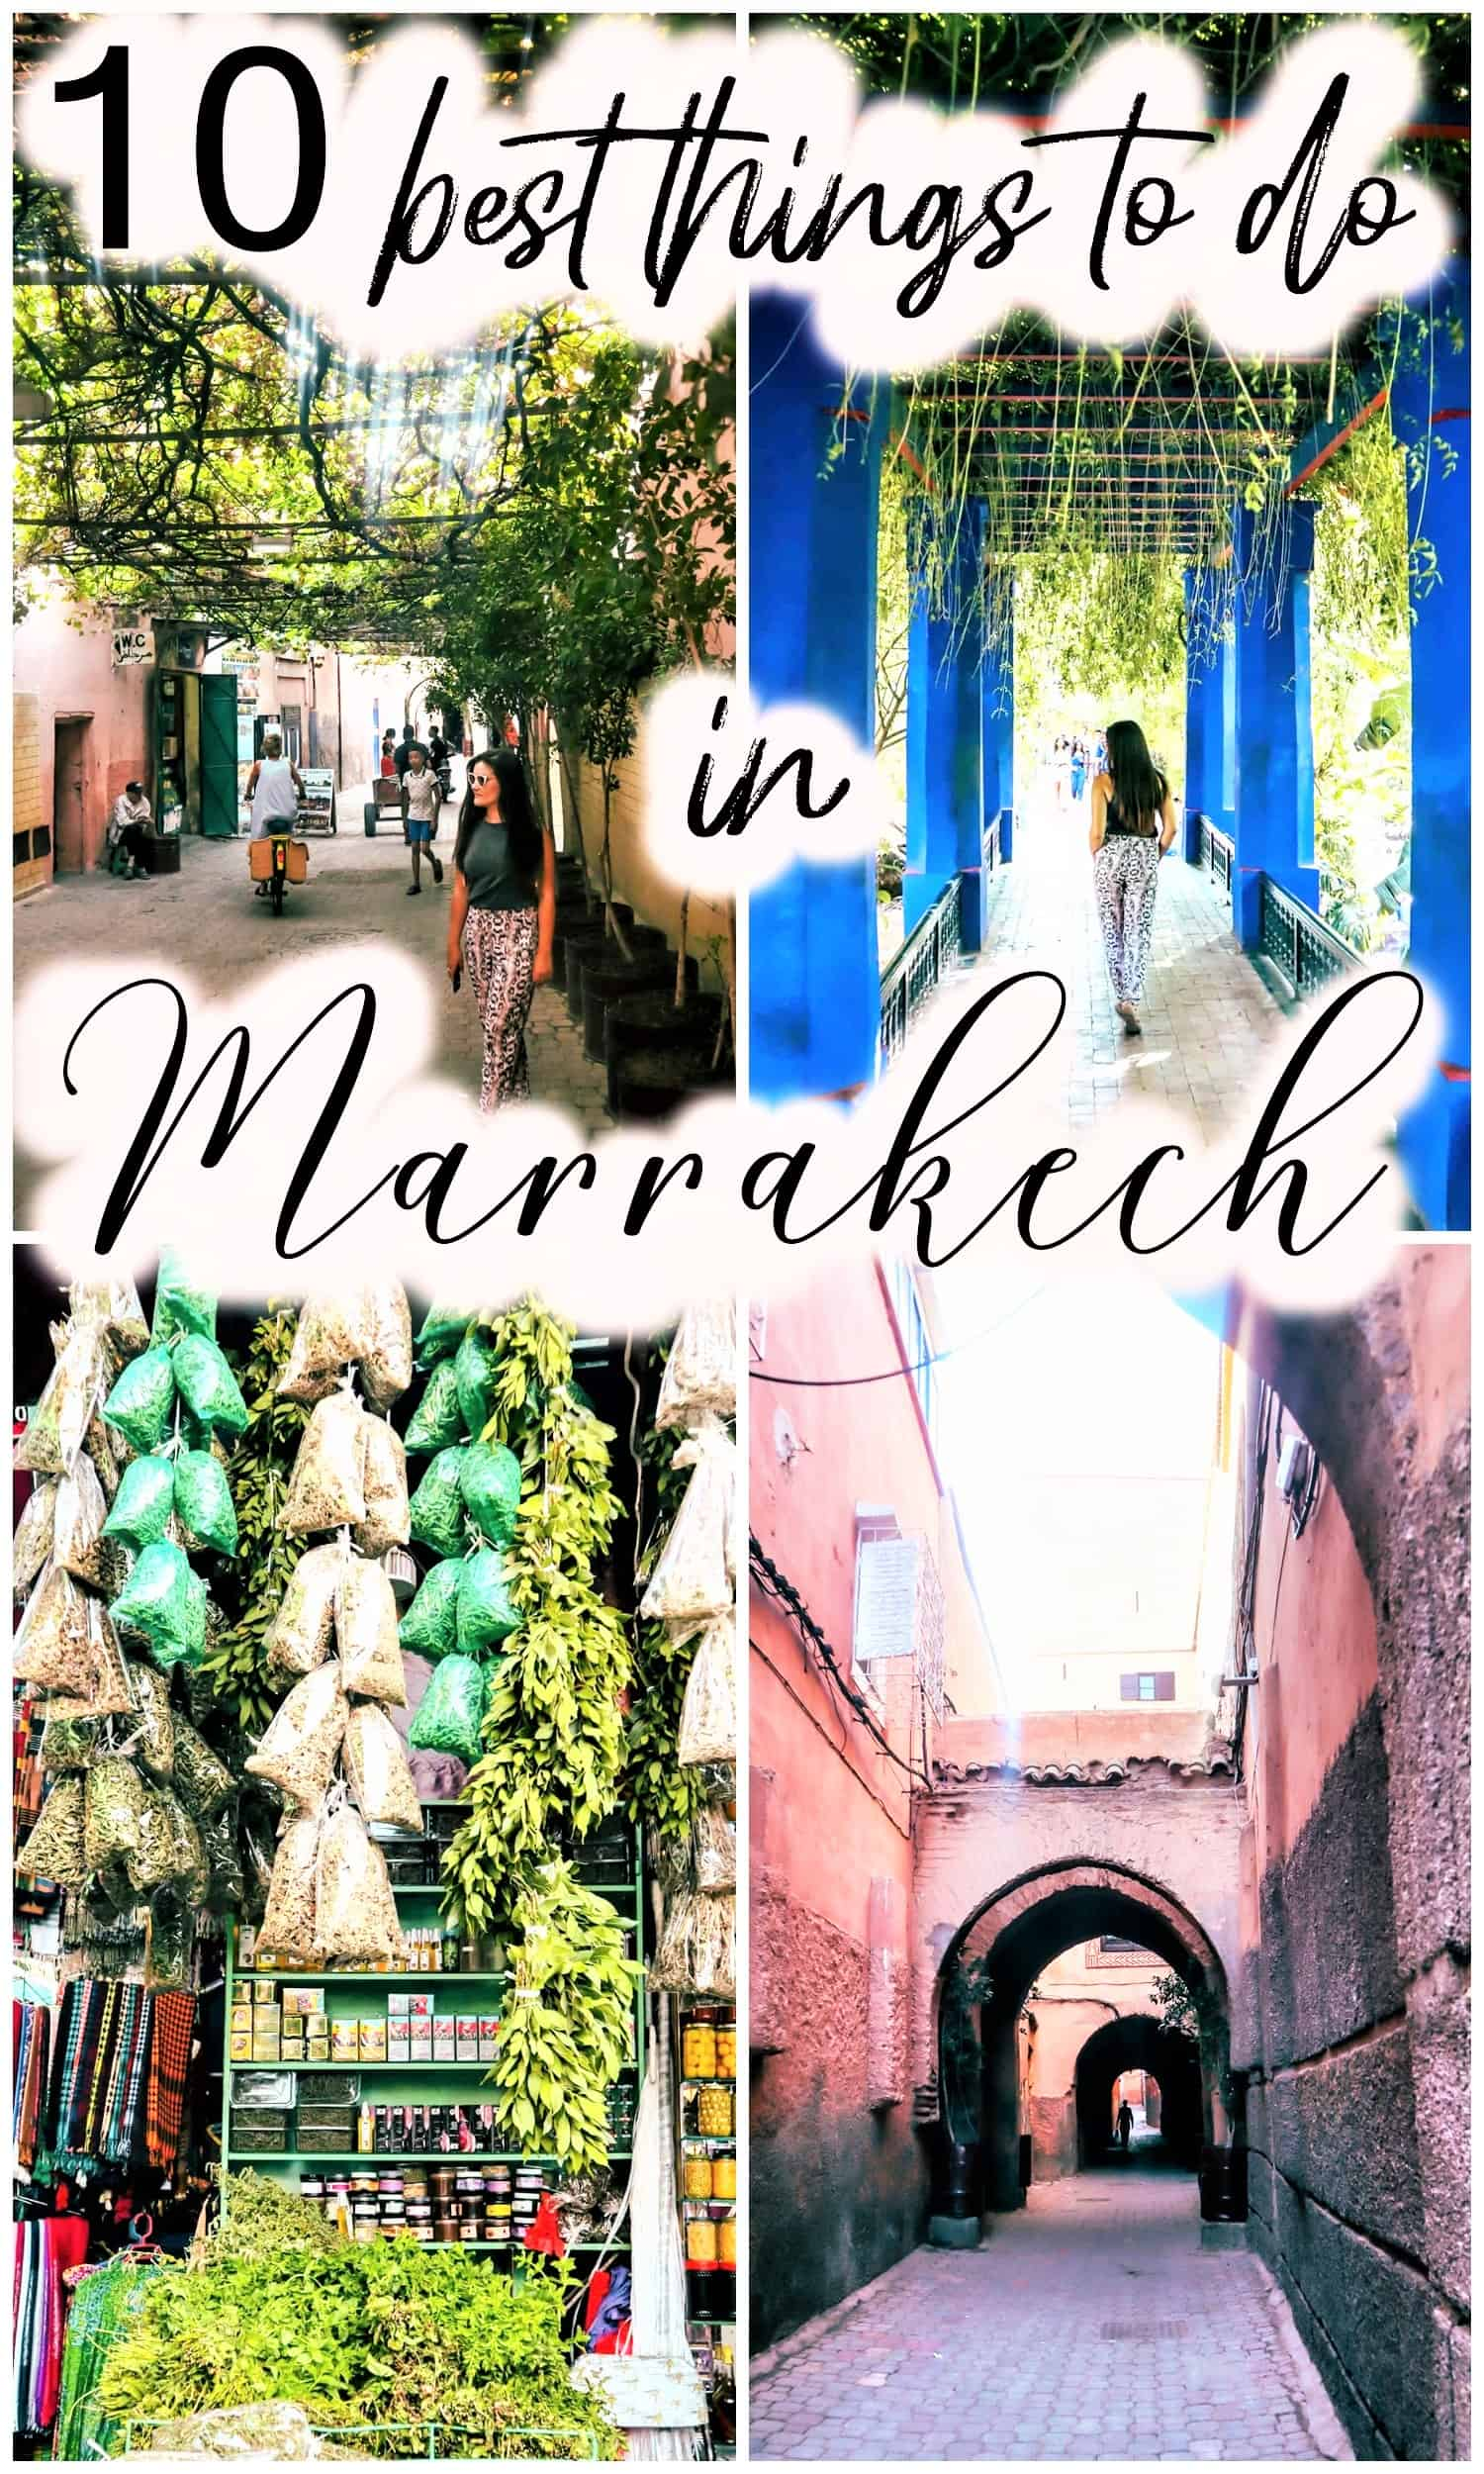 10 best things to do in Marrakech